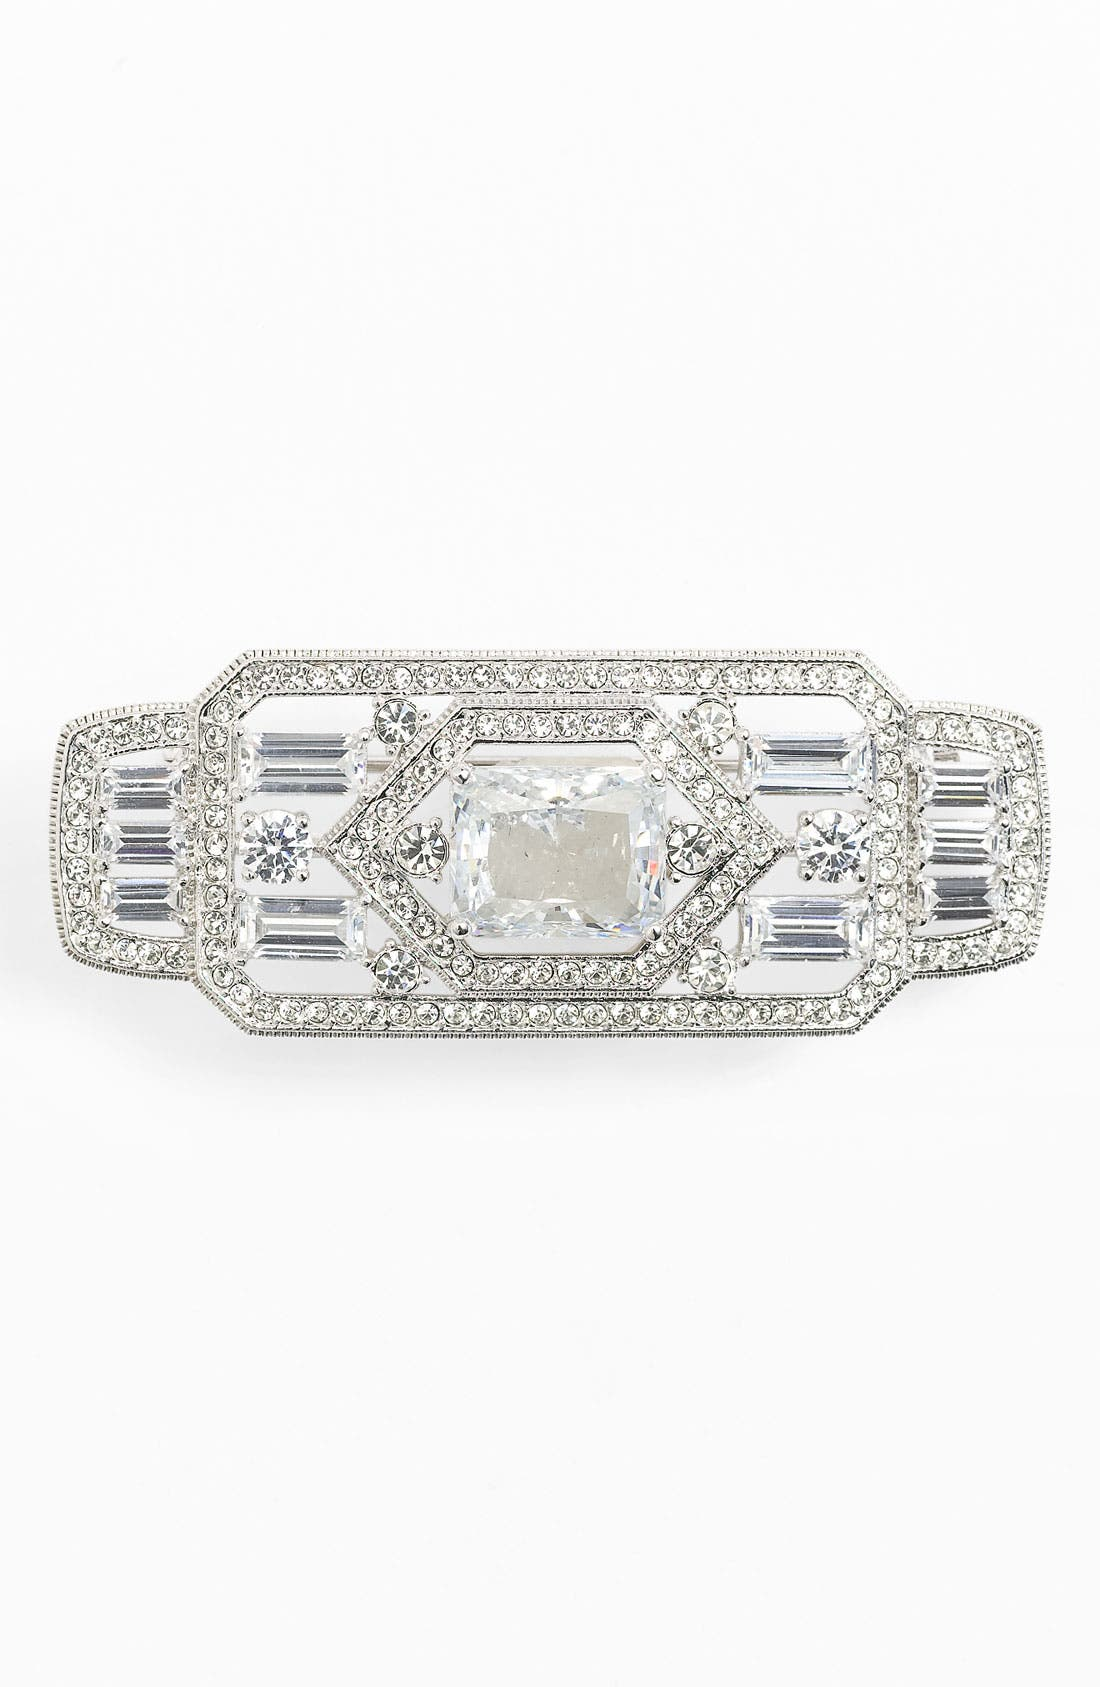 Main Image - Nadri 'Art Deco' Rectangle Brooch (Nordstrom Exclusive)